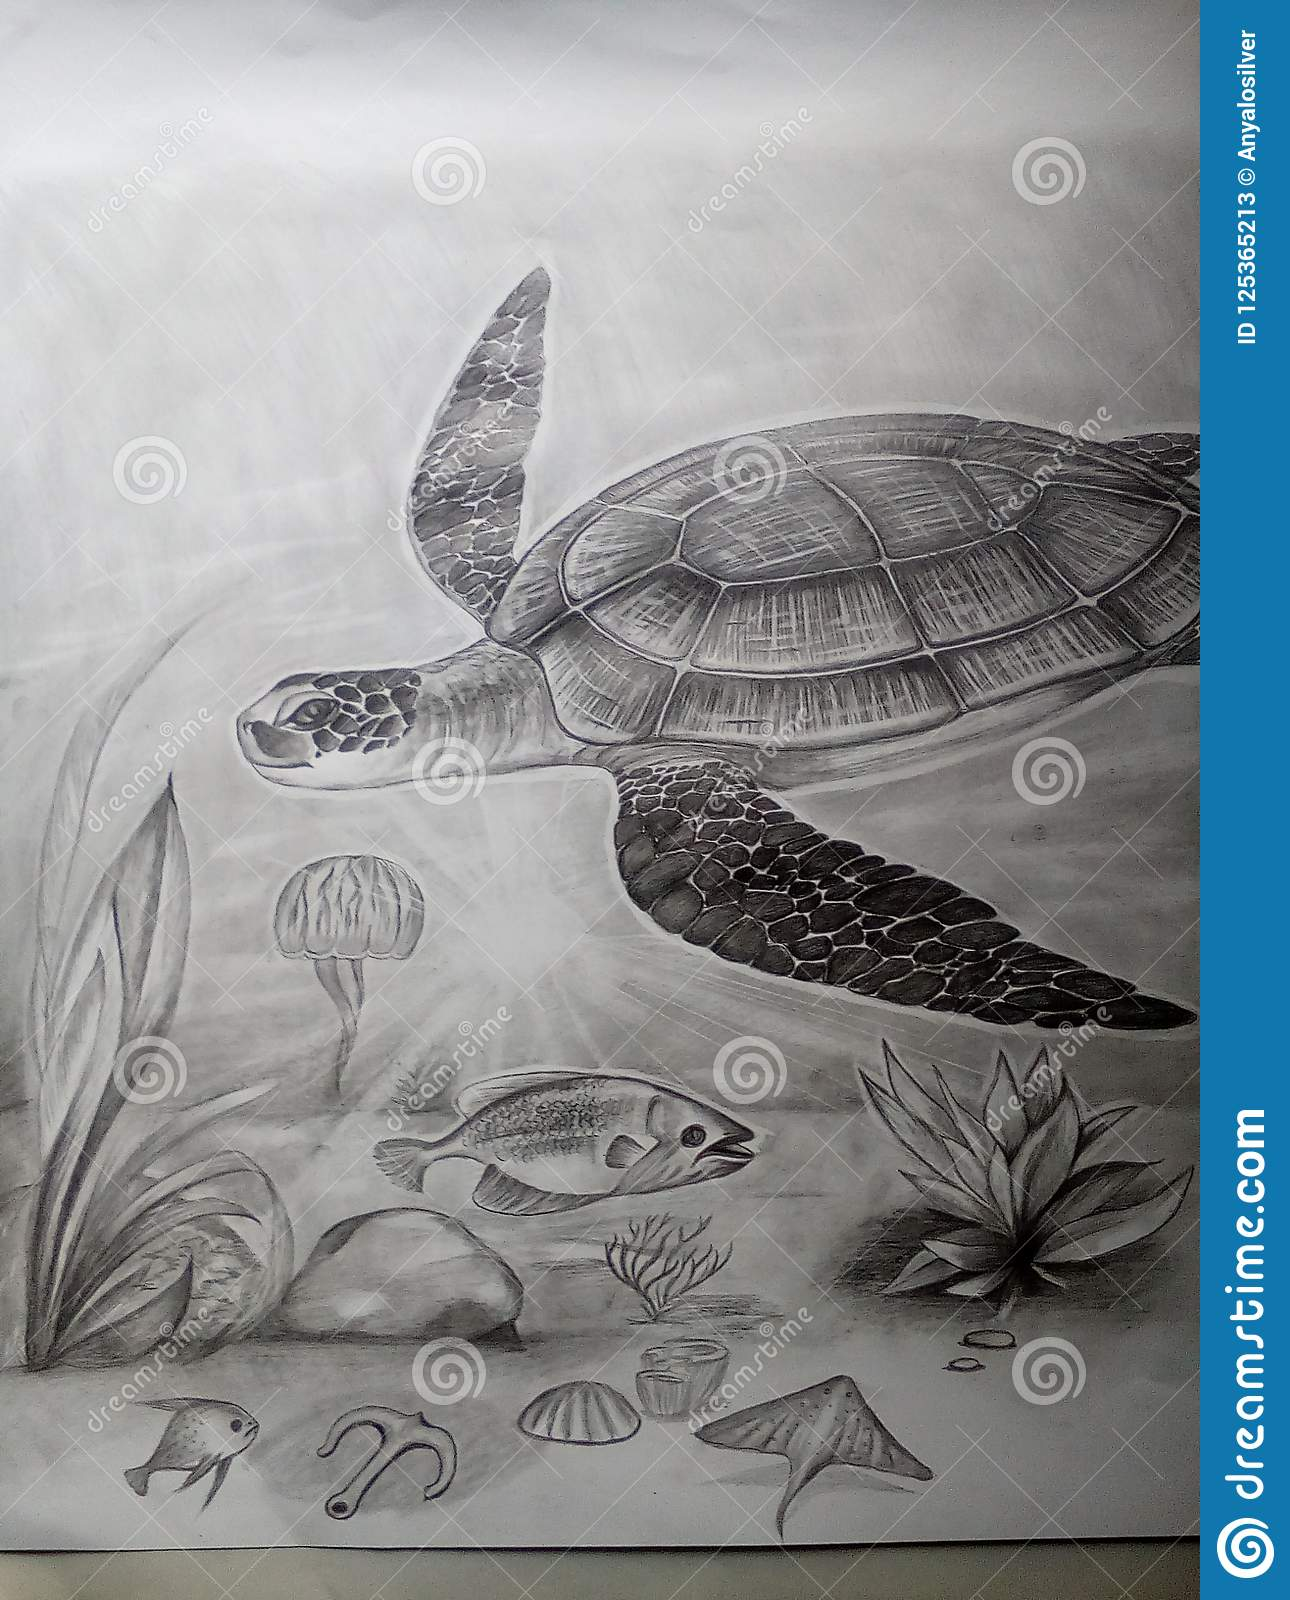 Under water pencil art turtle drawing editorial stock photo image